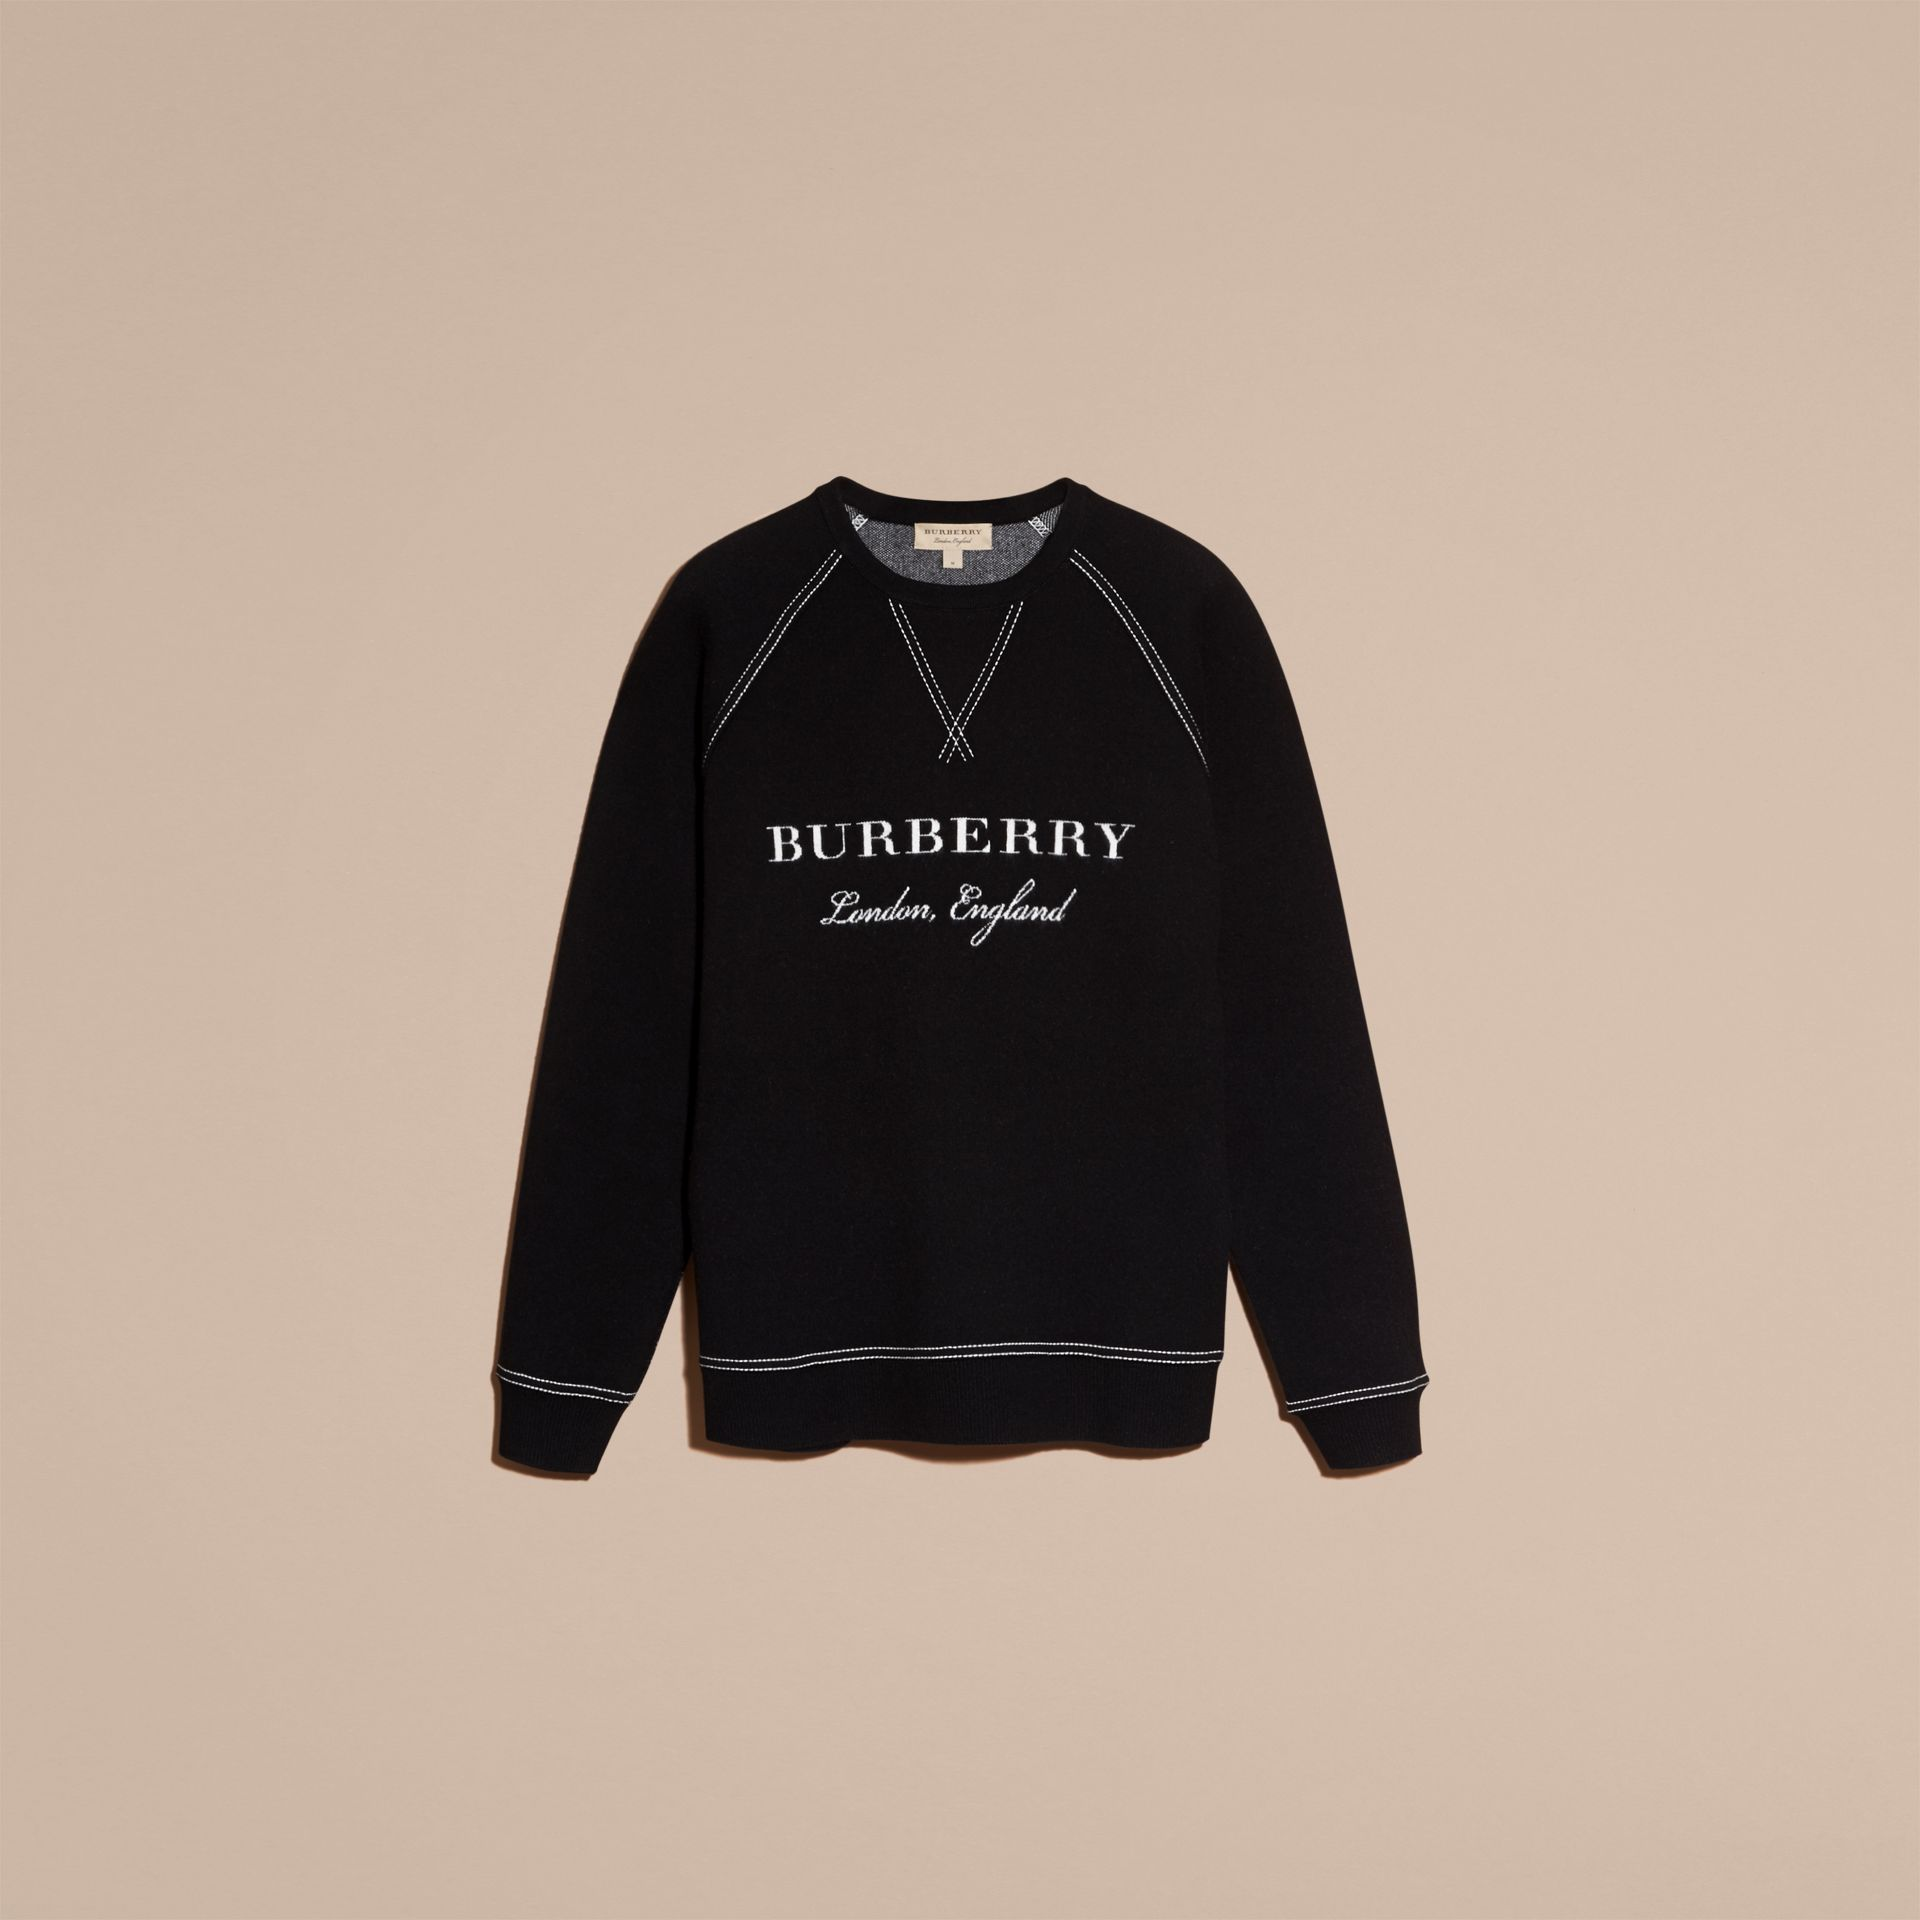 Topstitch Detail Wool Cashmere Blend Sweatshirt in Black - Men | Burberry - gallery image 4